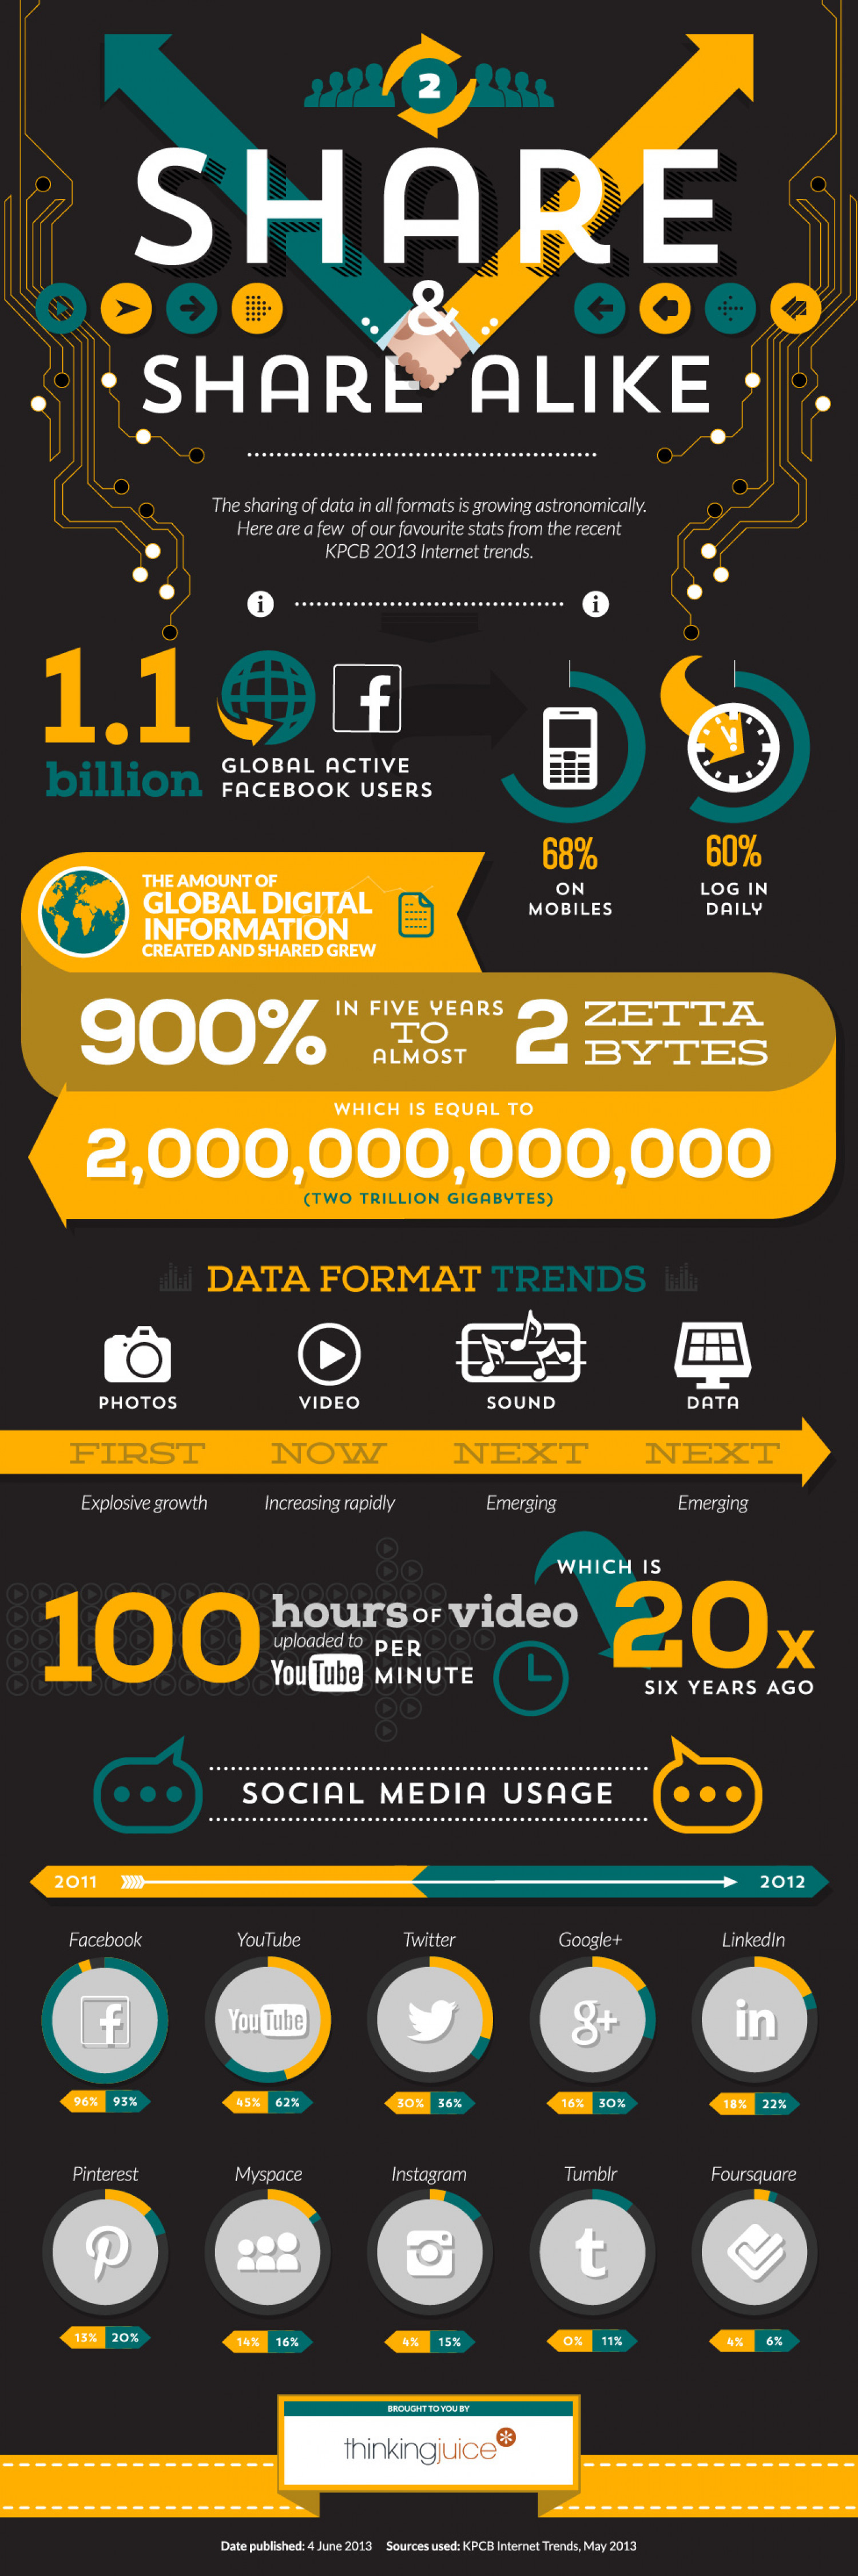 Share And Share Alike Infographic